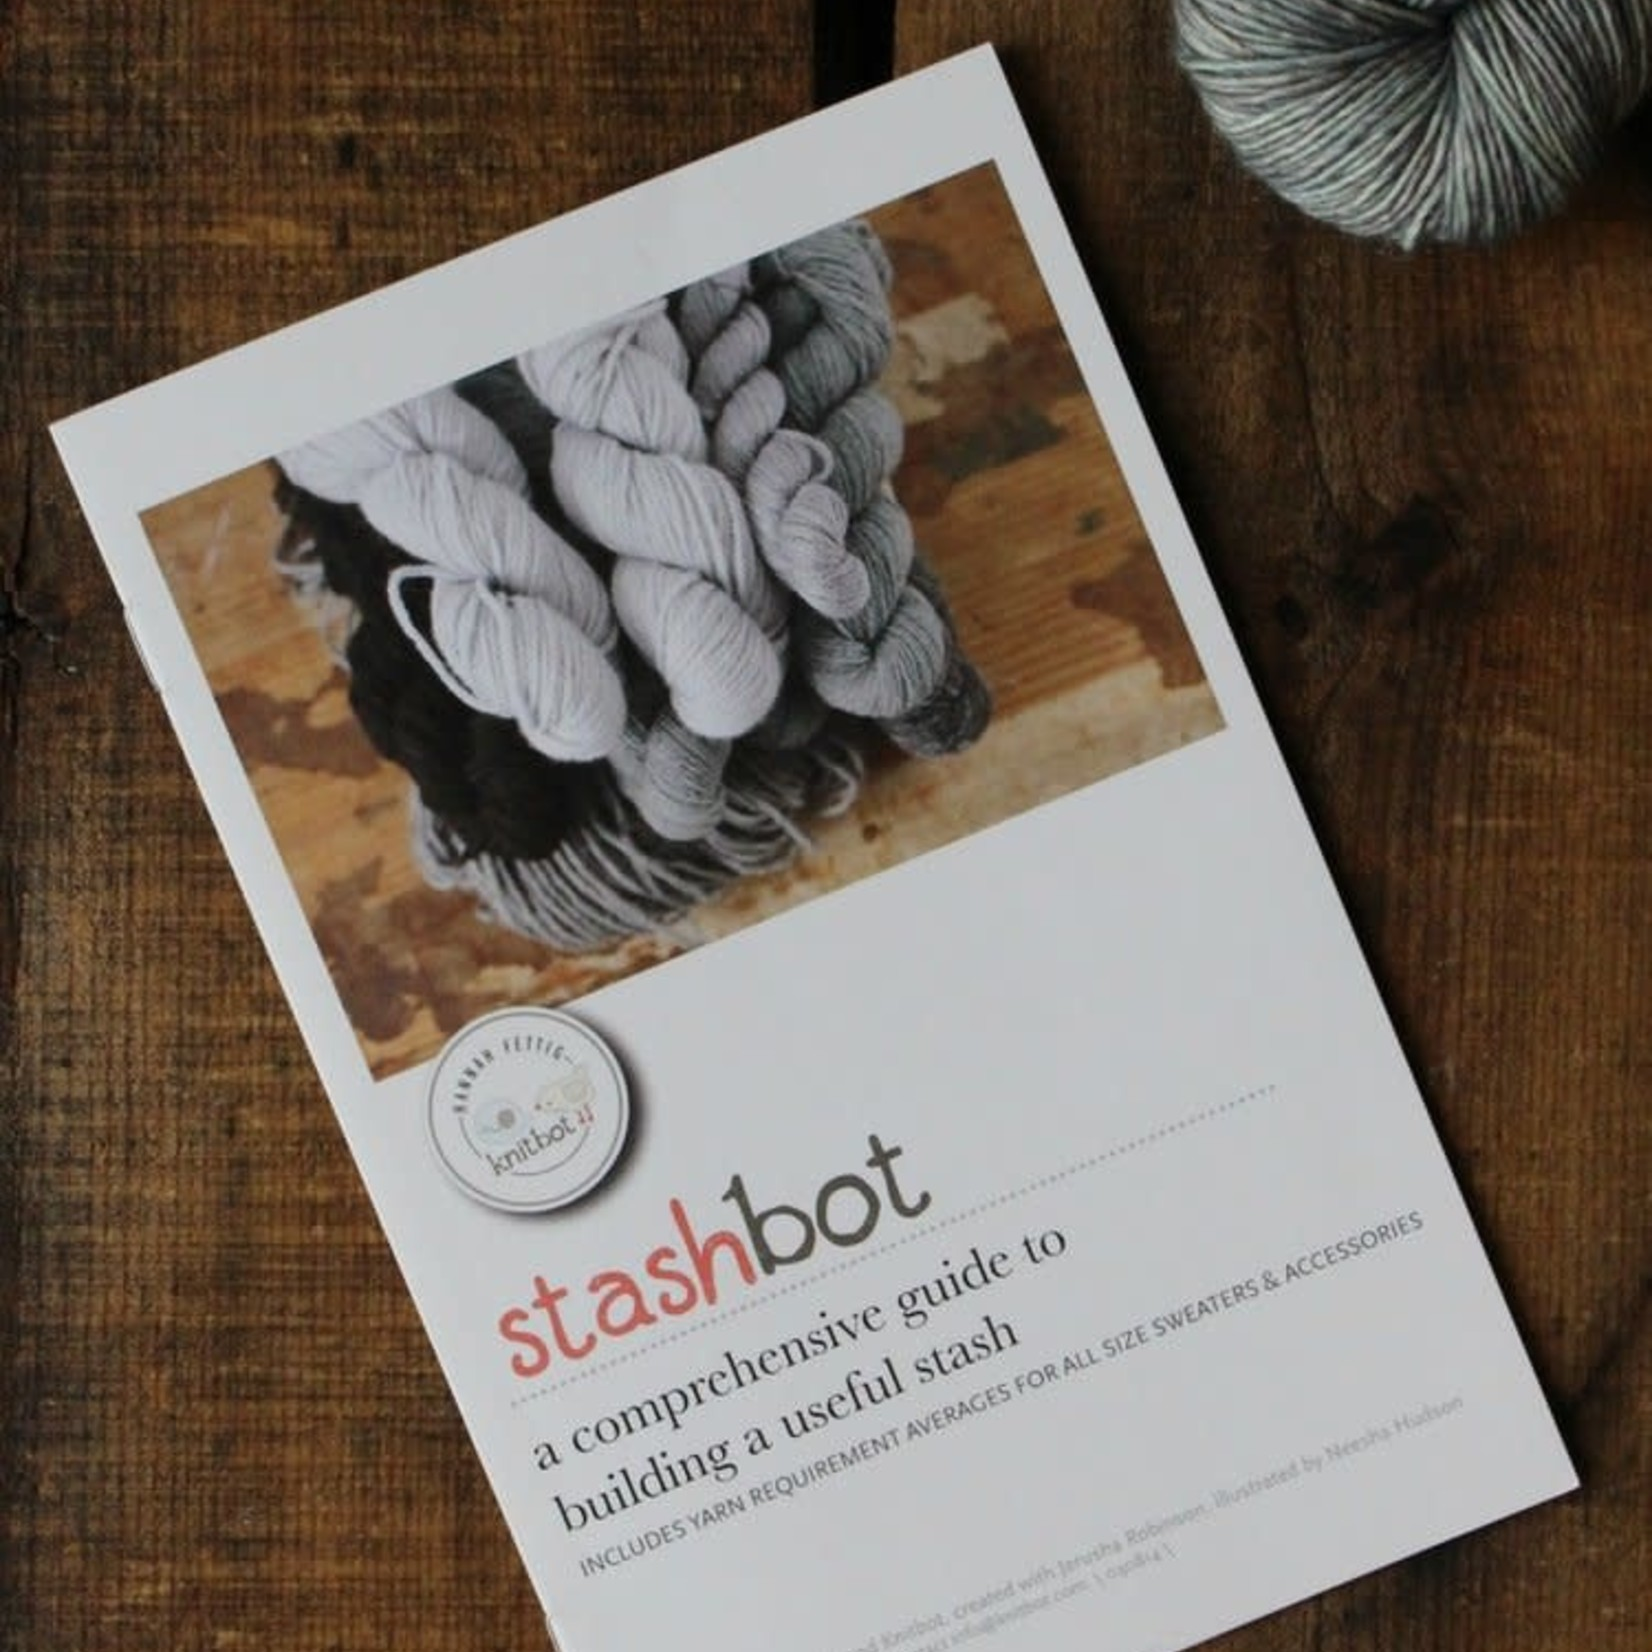 Knitbot Stashbot with Stand - NNK Press